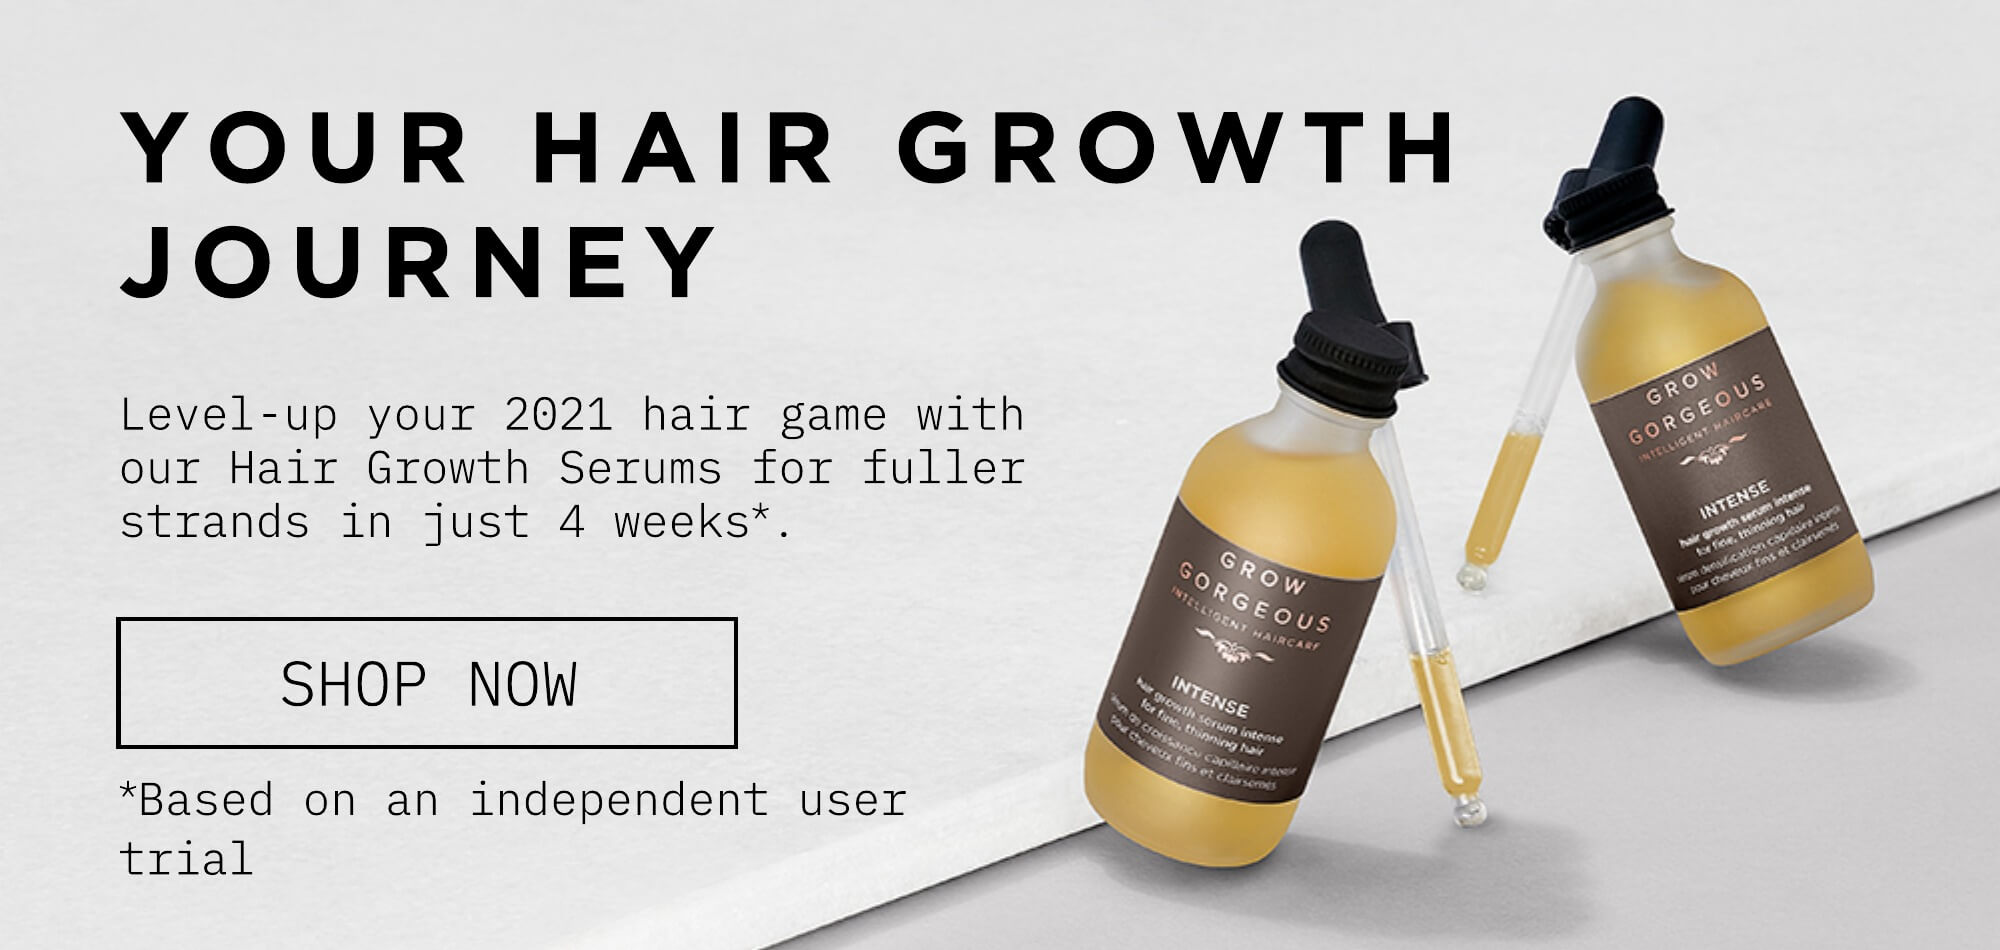 Start your hair growth journey with our hair growth serums. Click to shop Serums